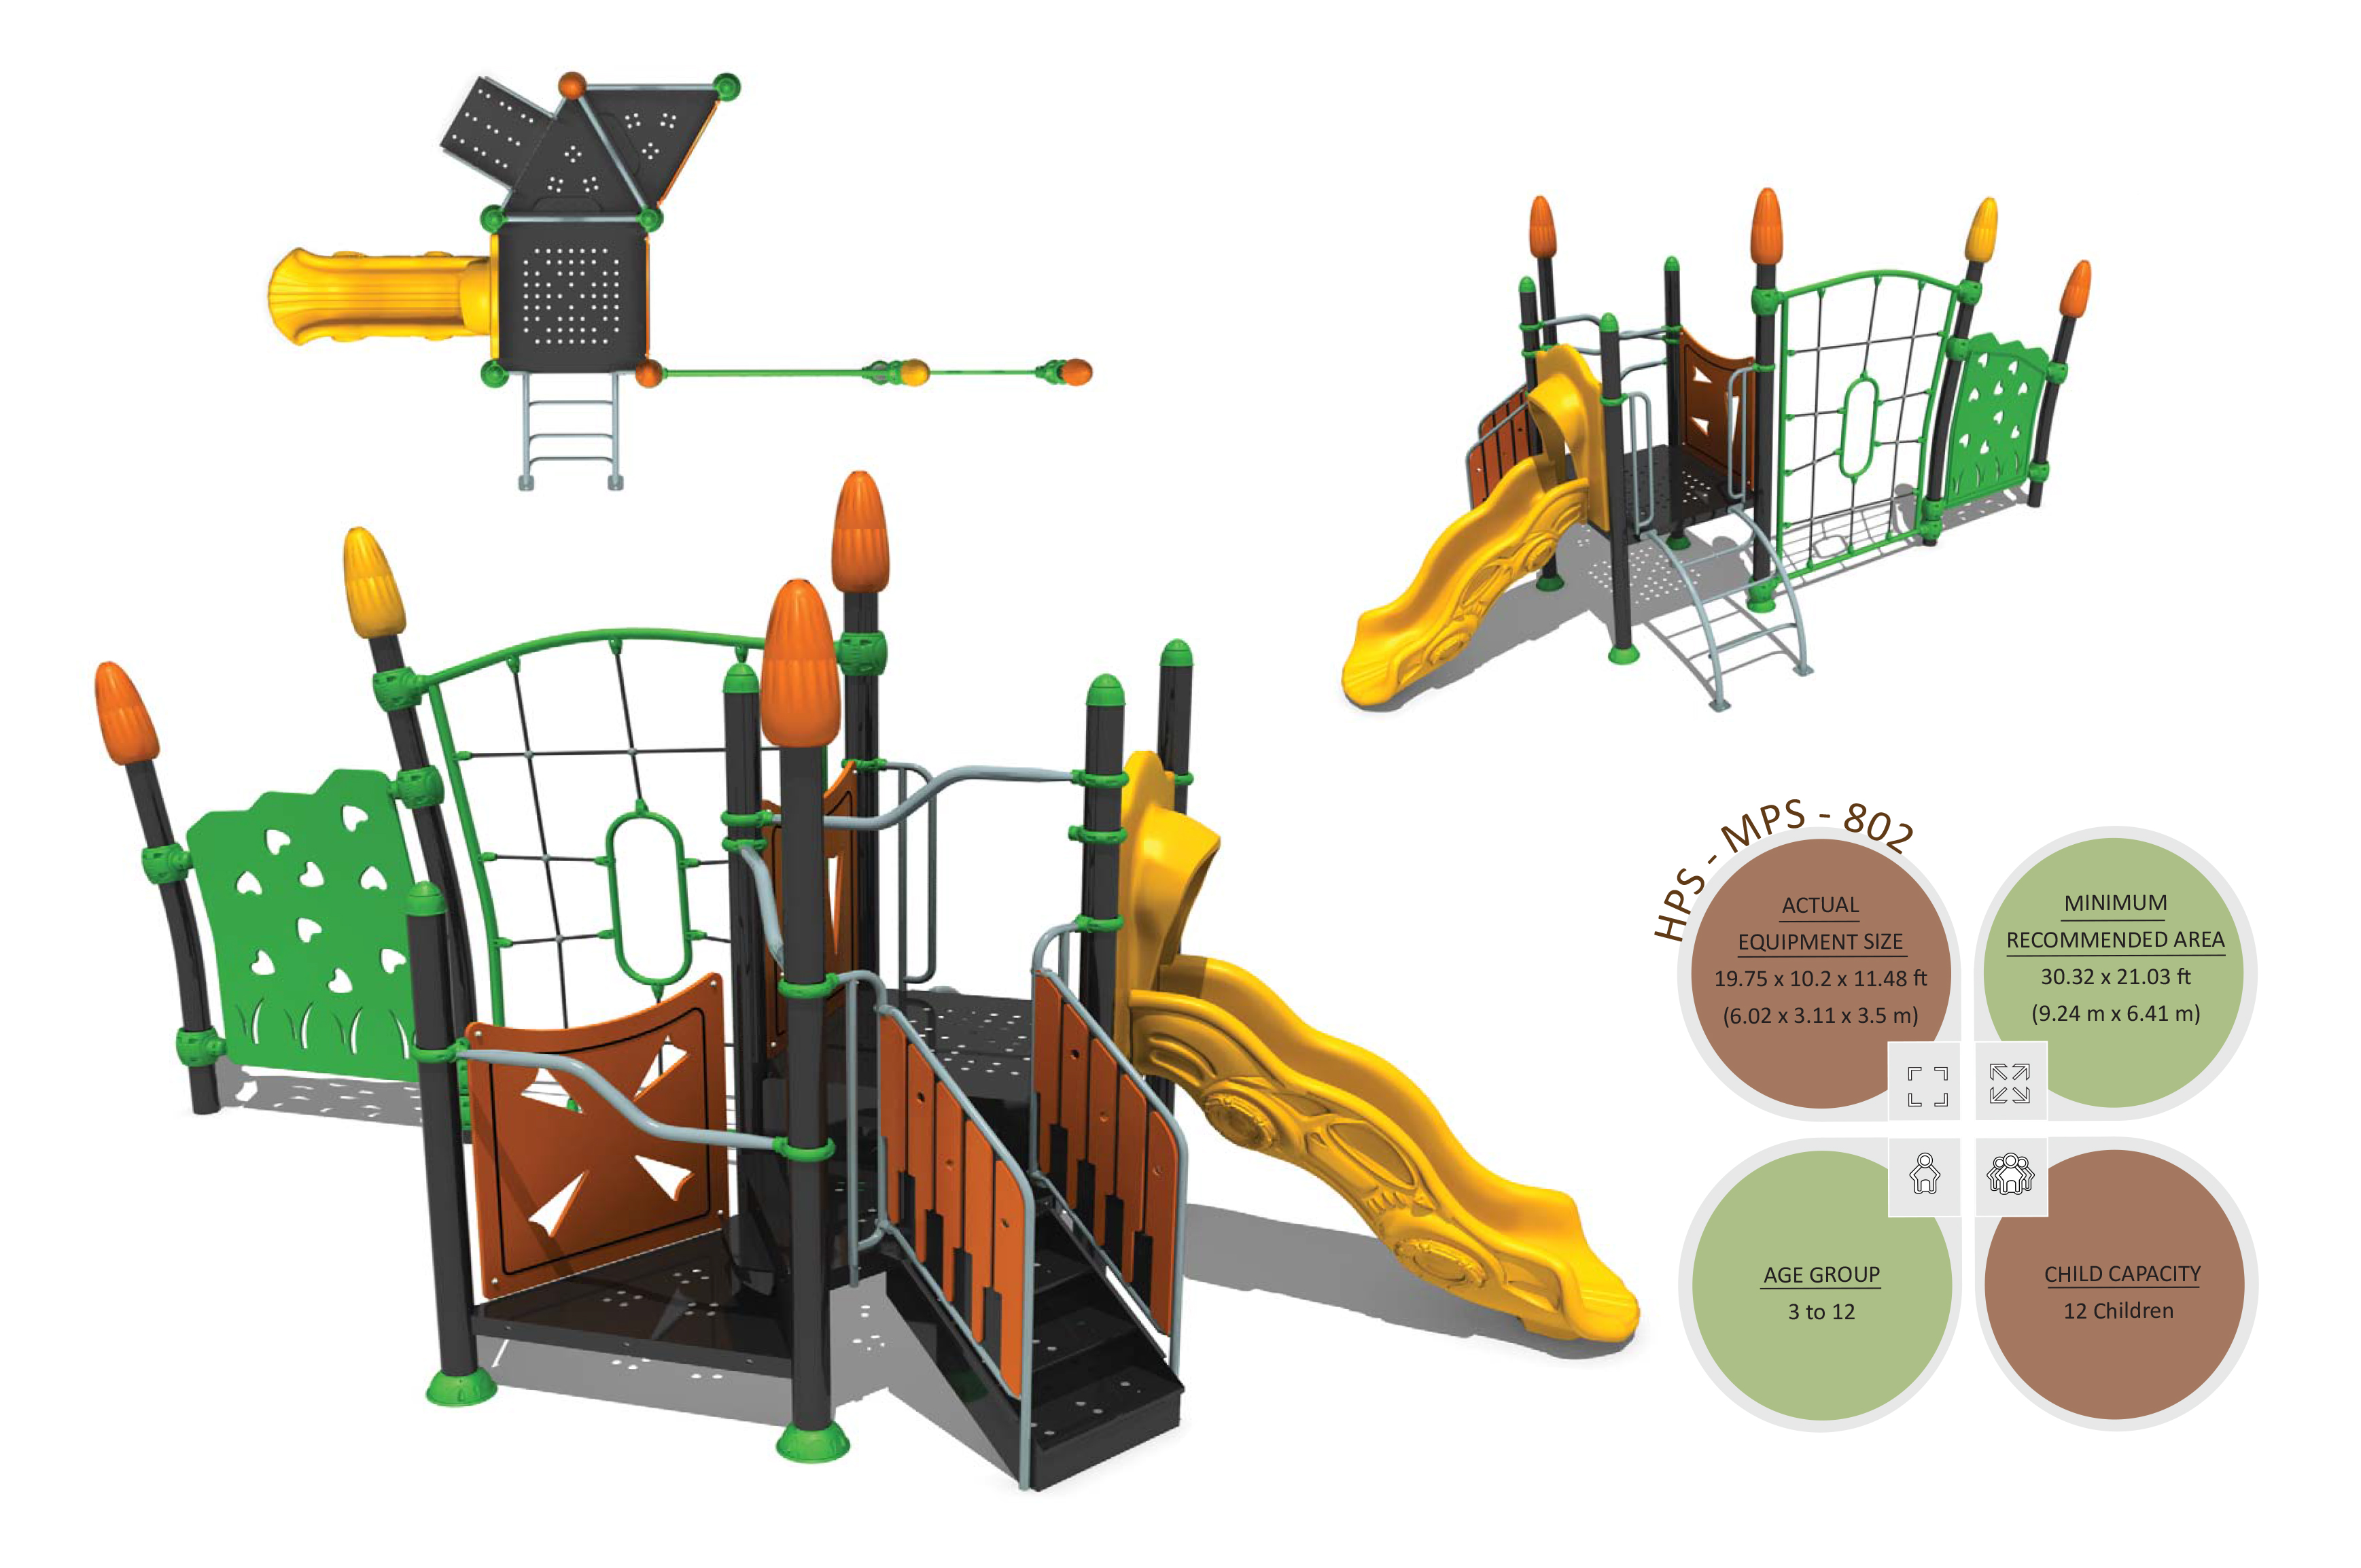 Mps 802 Multiplay Systems Outdoor Fitness Equipment